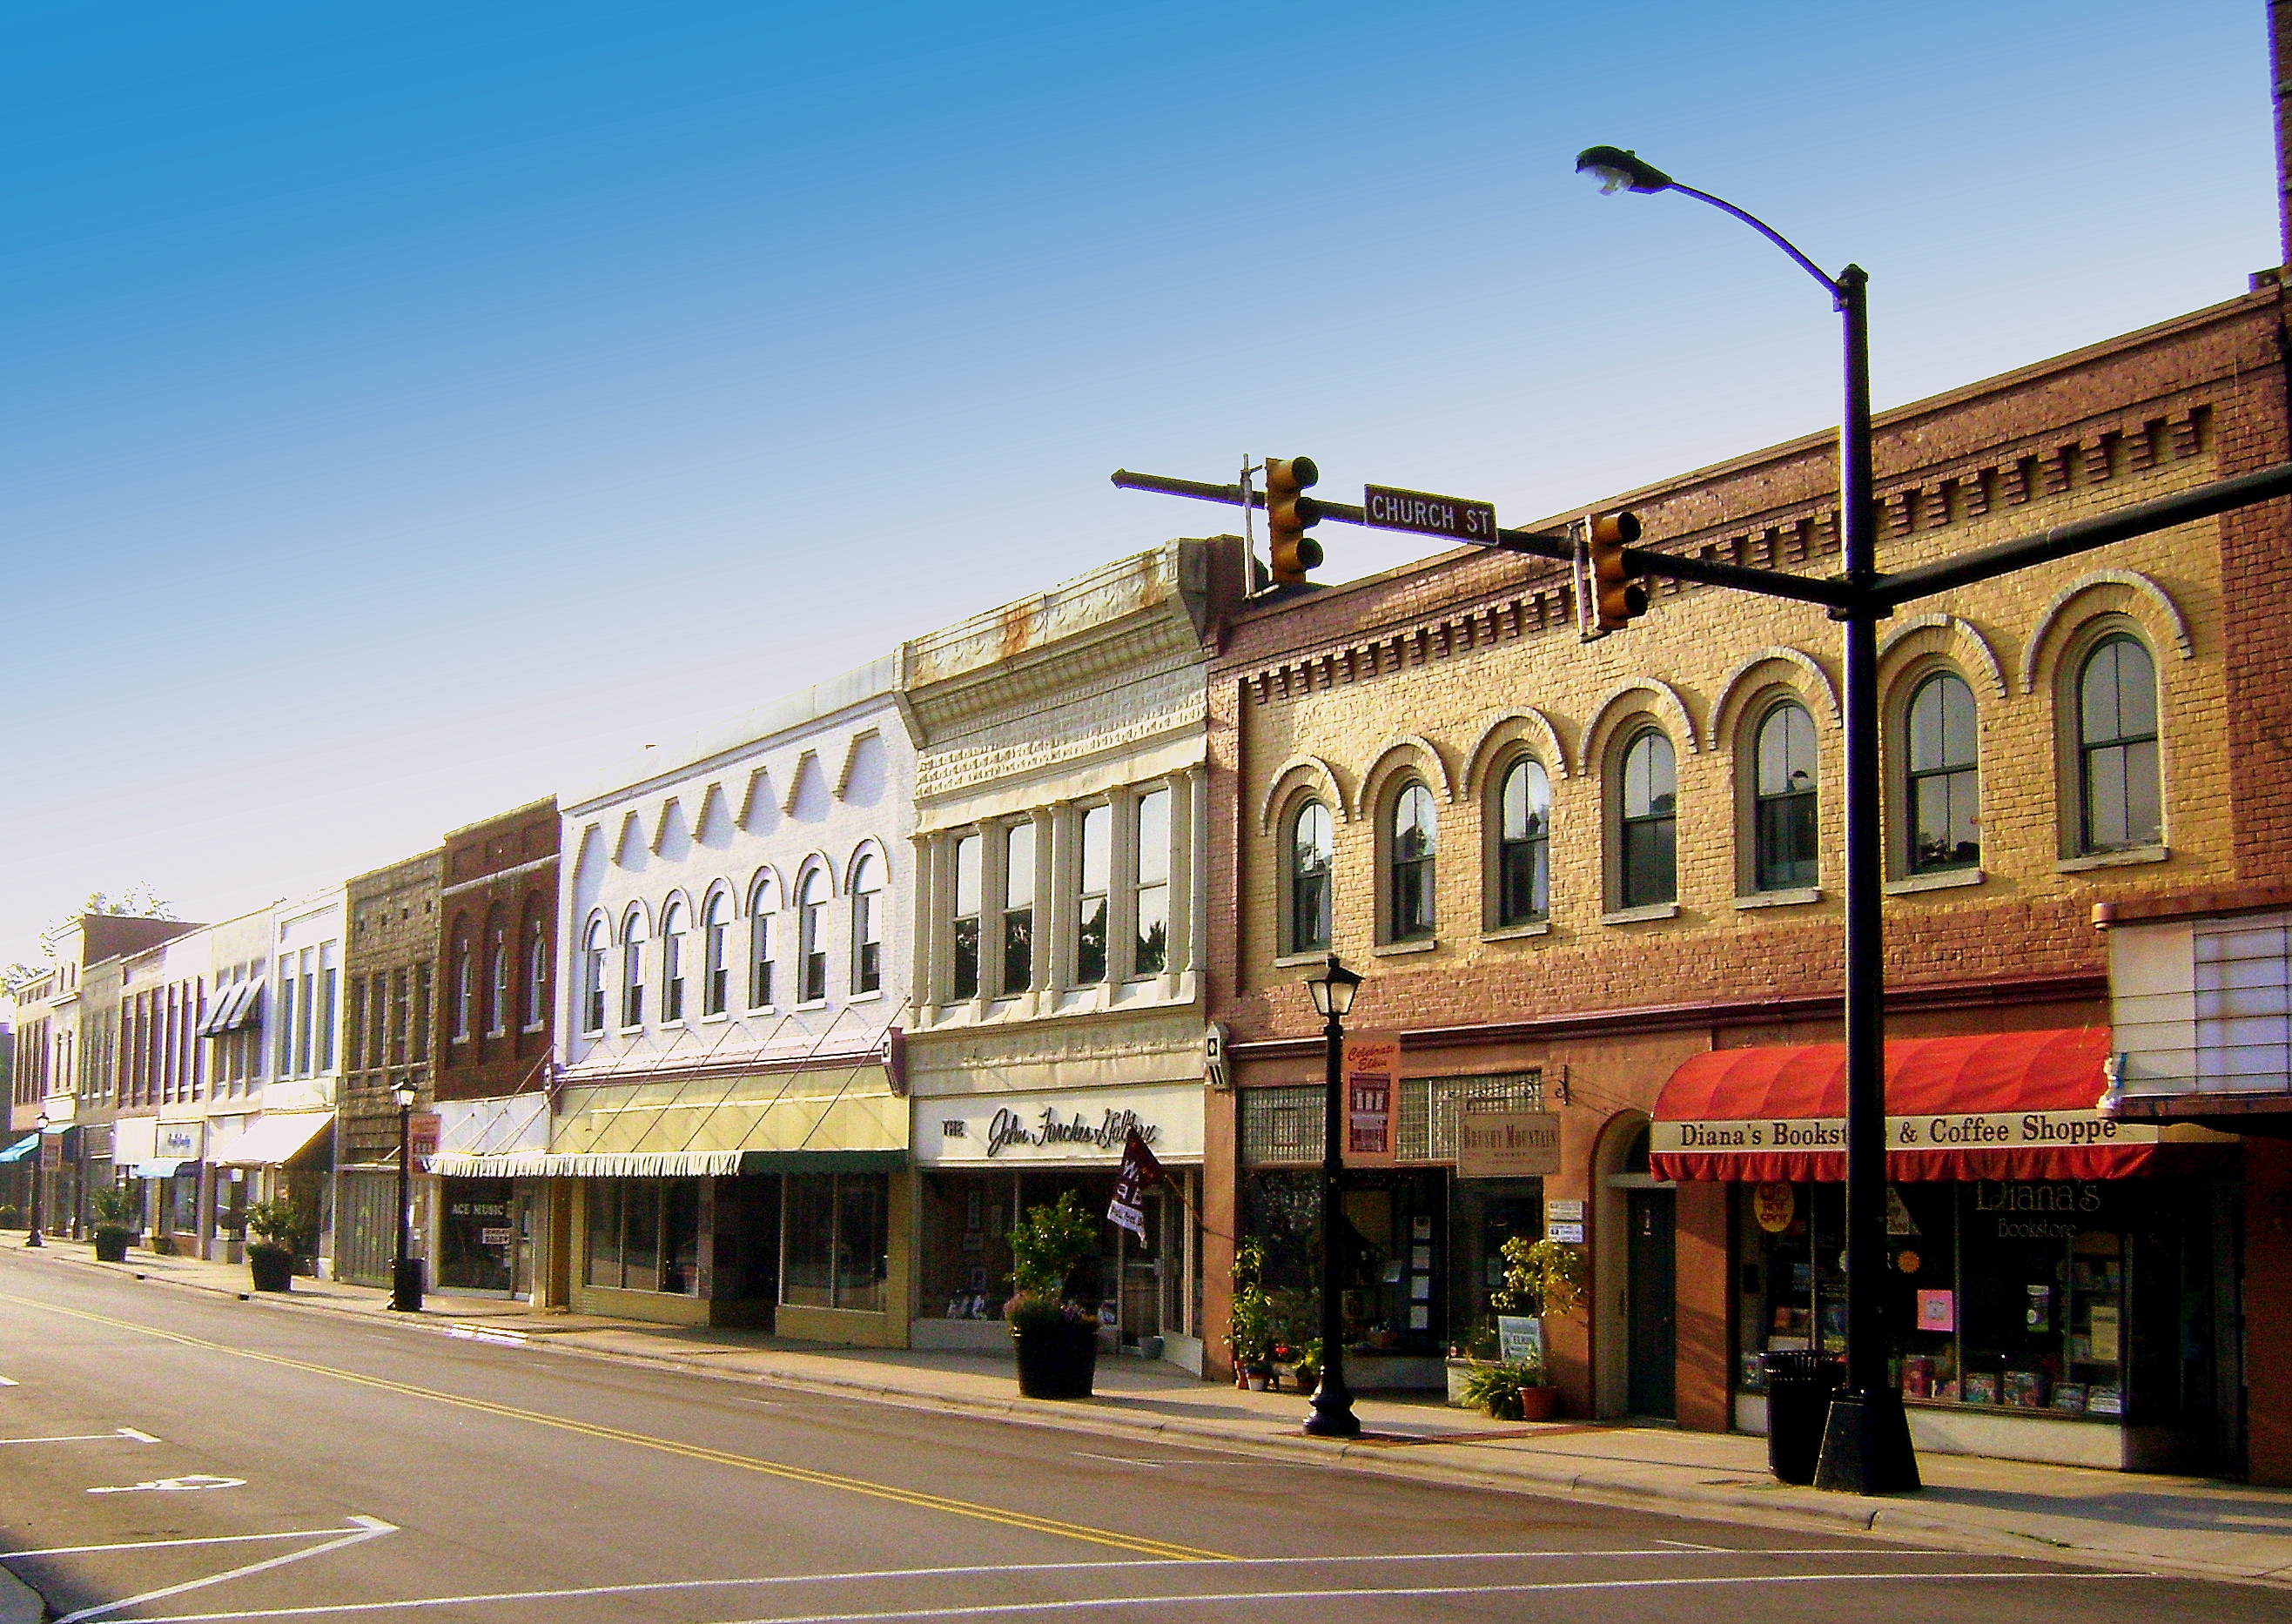 Wallpaper Stores In Sioux Falls Sd 50 Best Small Town Main Streets In America Top Value Reviews